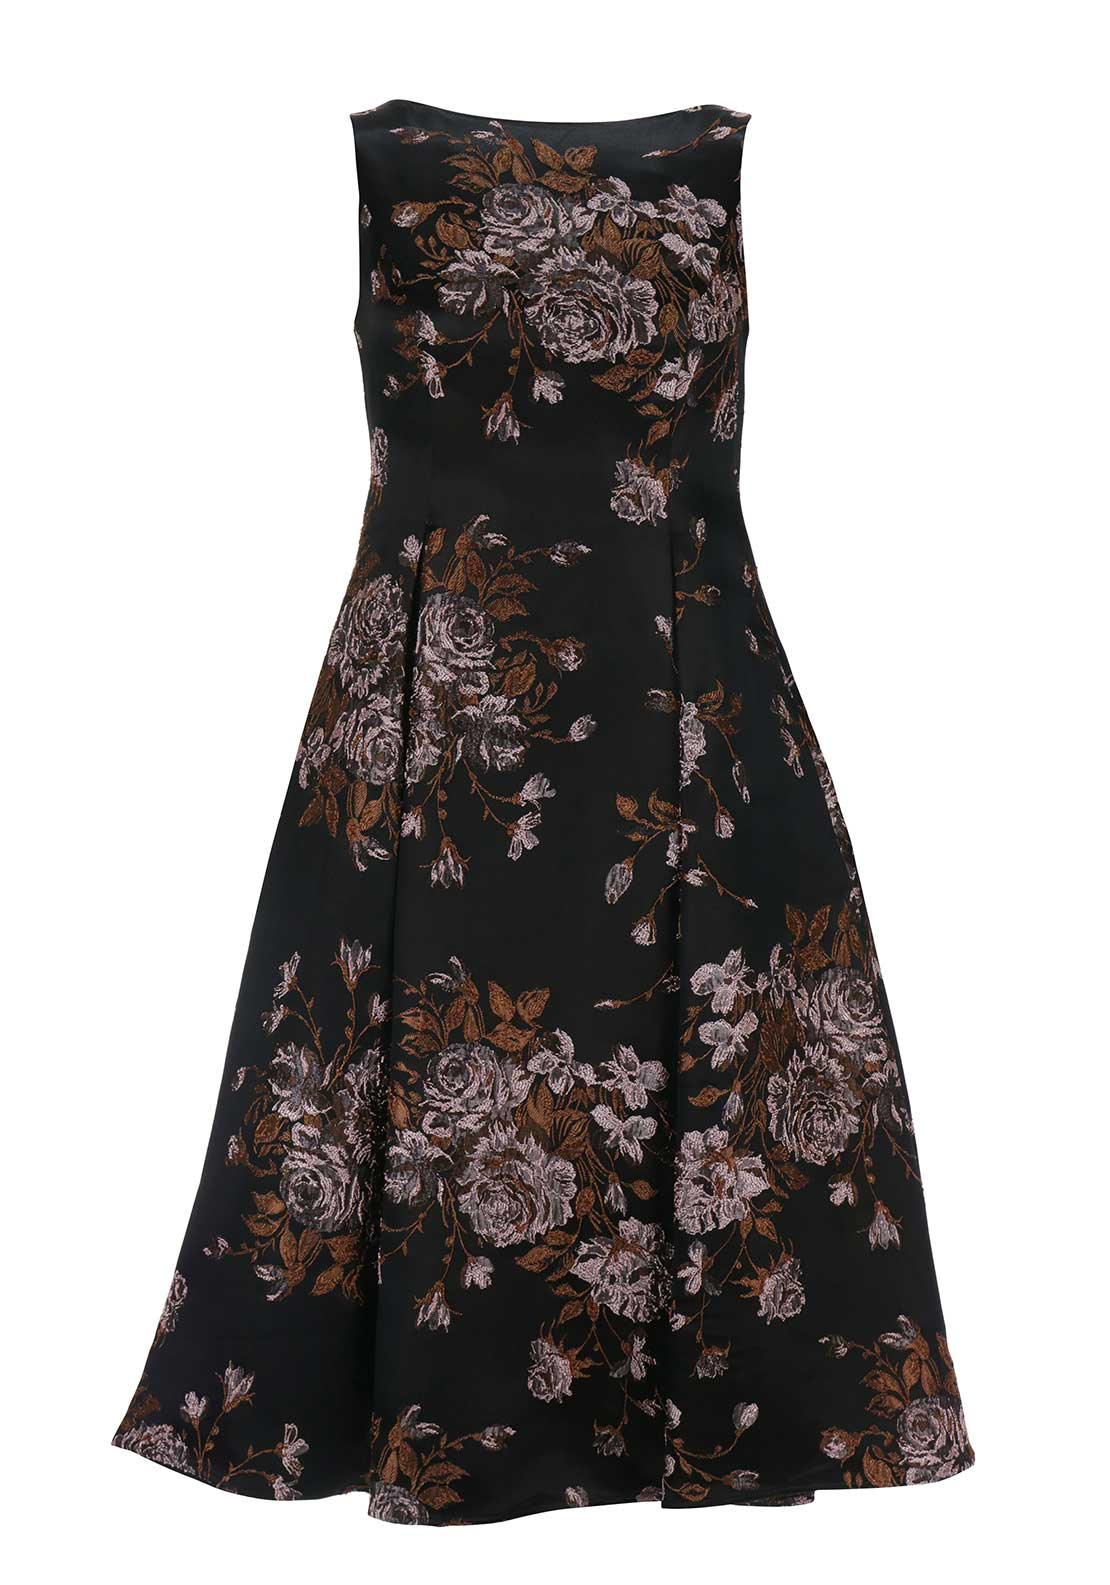 Kate Cooper Embroidered Flared Dress, Deep Brown